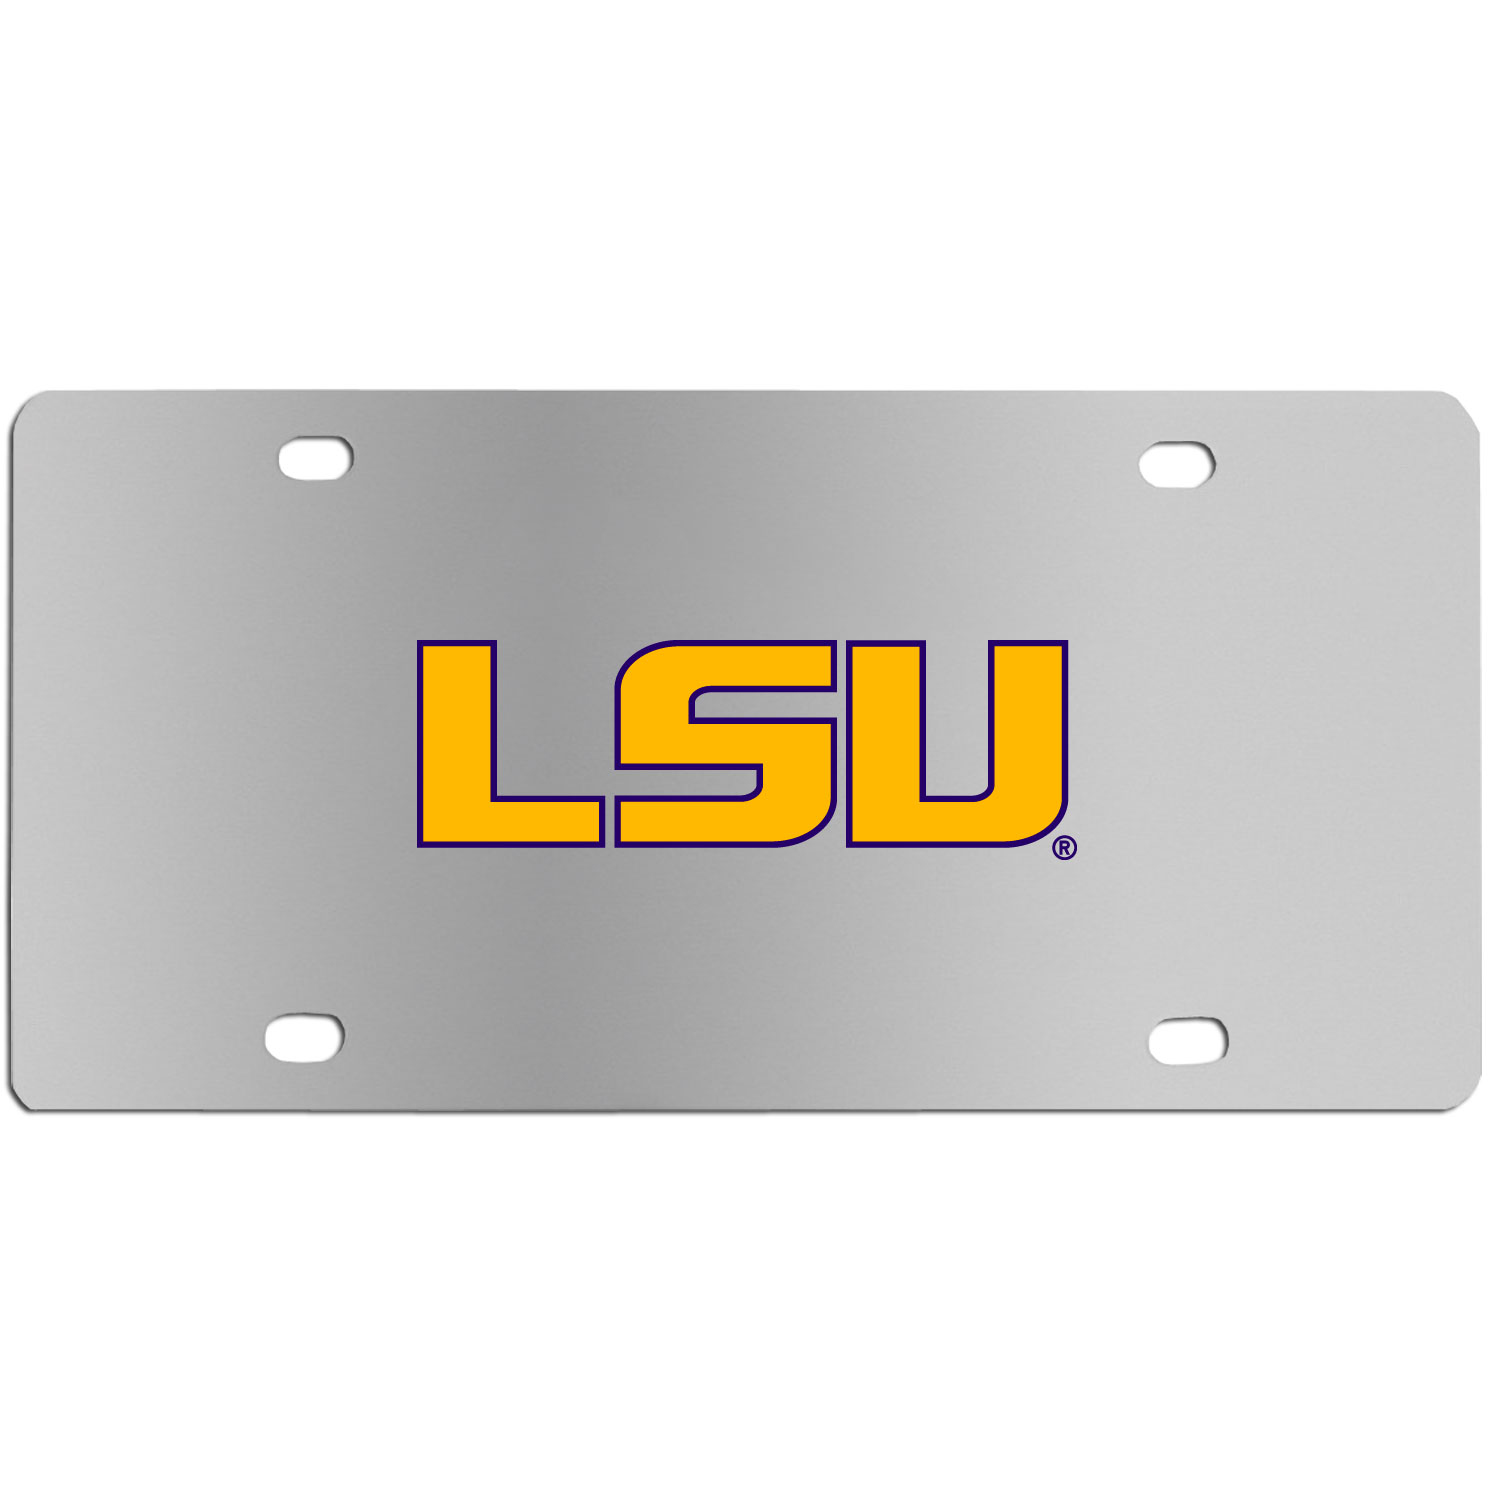 LSU Tigers Steel License Plate Wall Plaque - This high-quality stainless steel license plate features a detailed team logo on a the polished surface. The attractive plate is perfect for wall mounting in your home or office to become the perfect die-hard LSU Tigers fan decor.